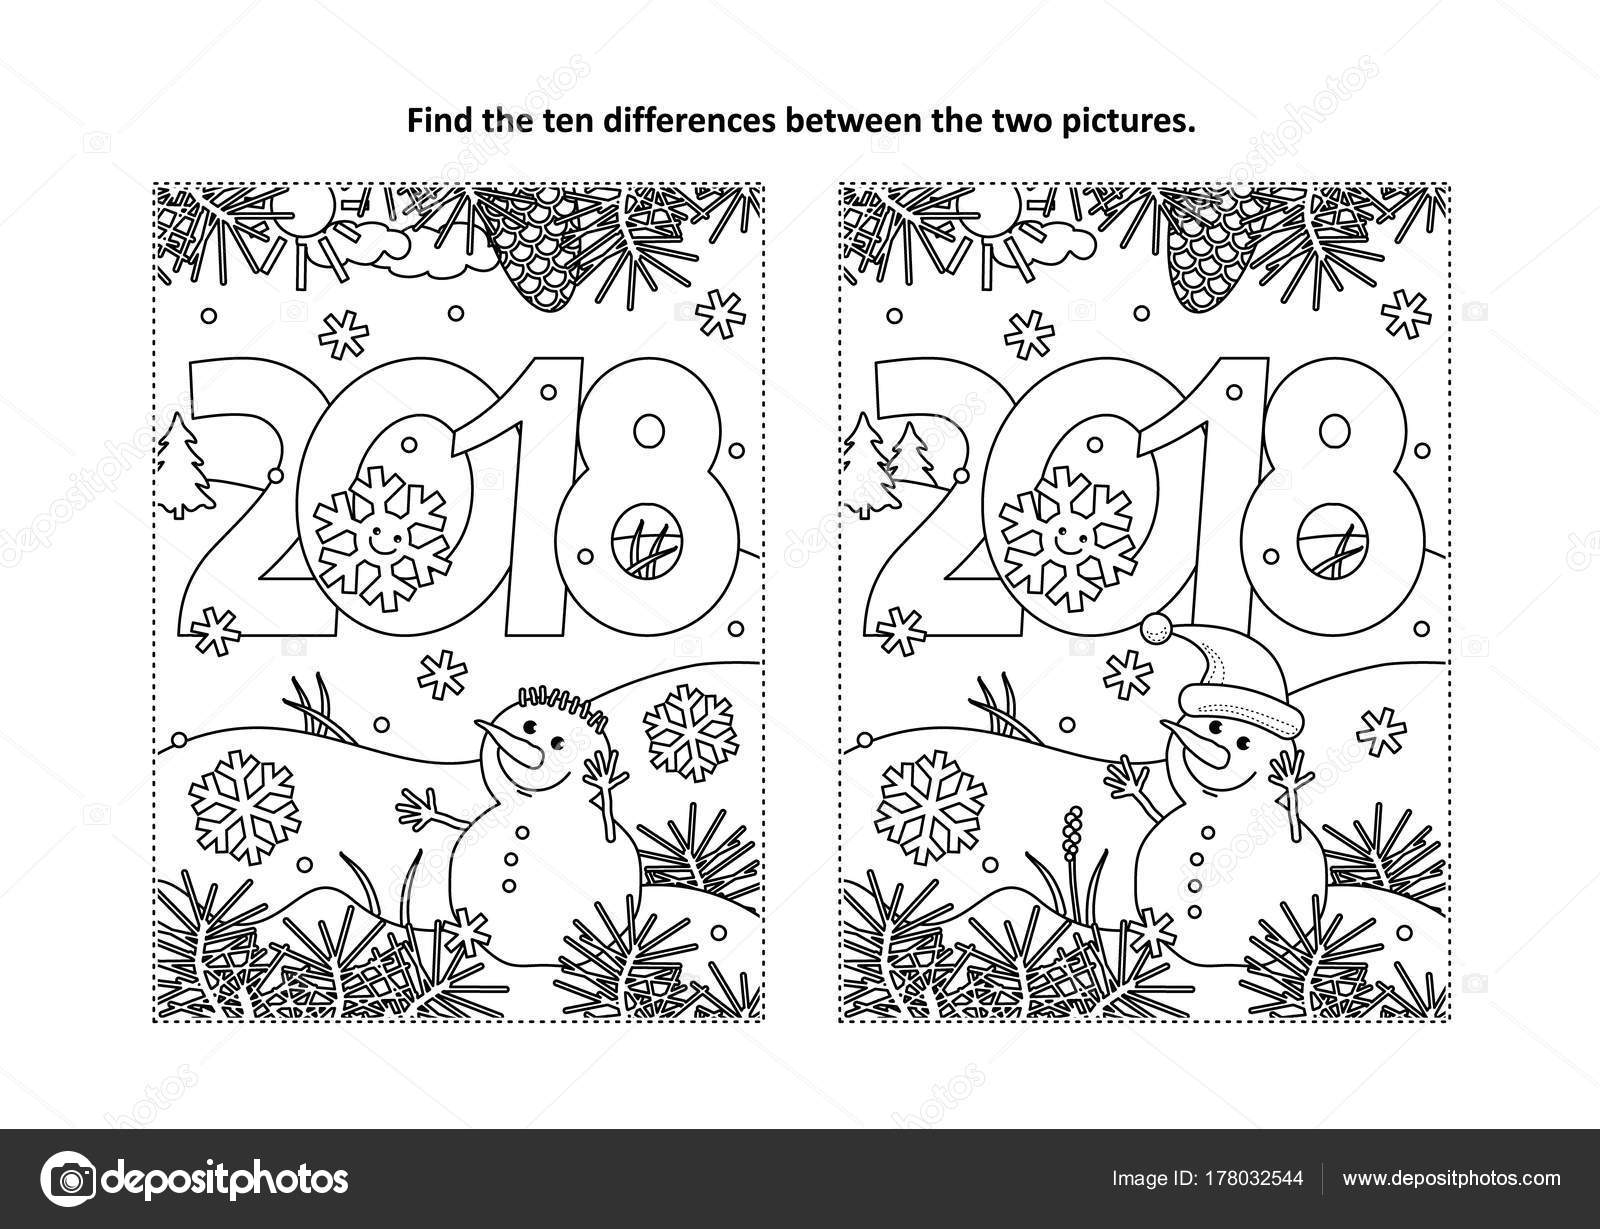 New Year Christmas Themed Find Ten Differences Picture Puzzle